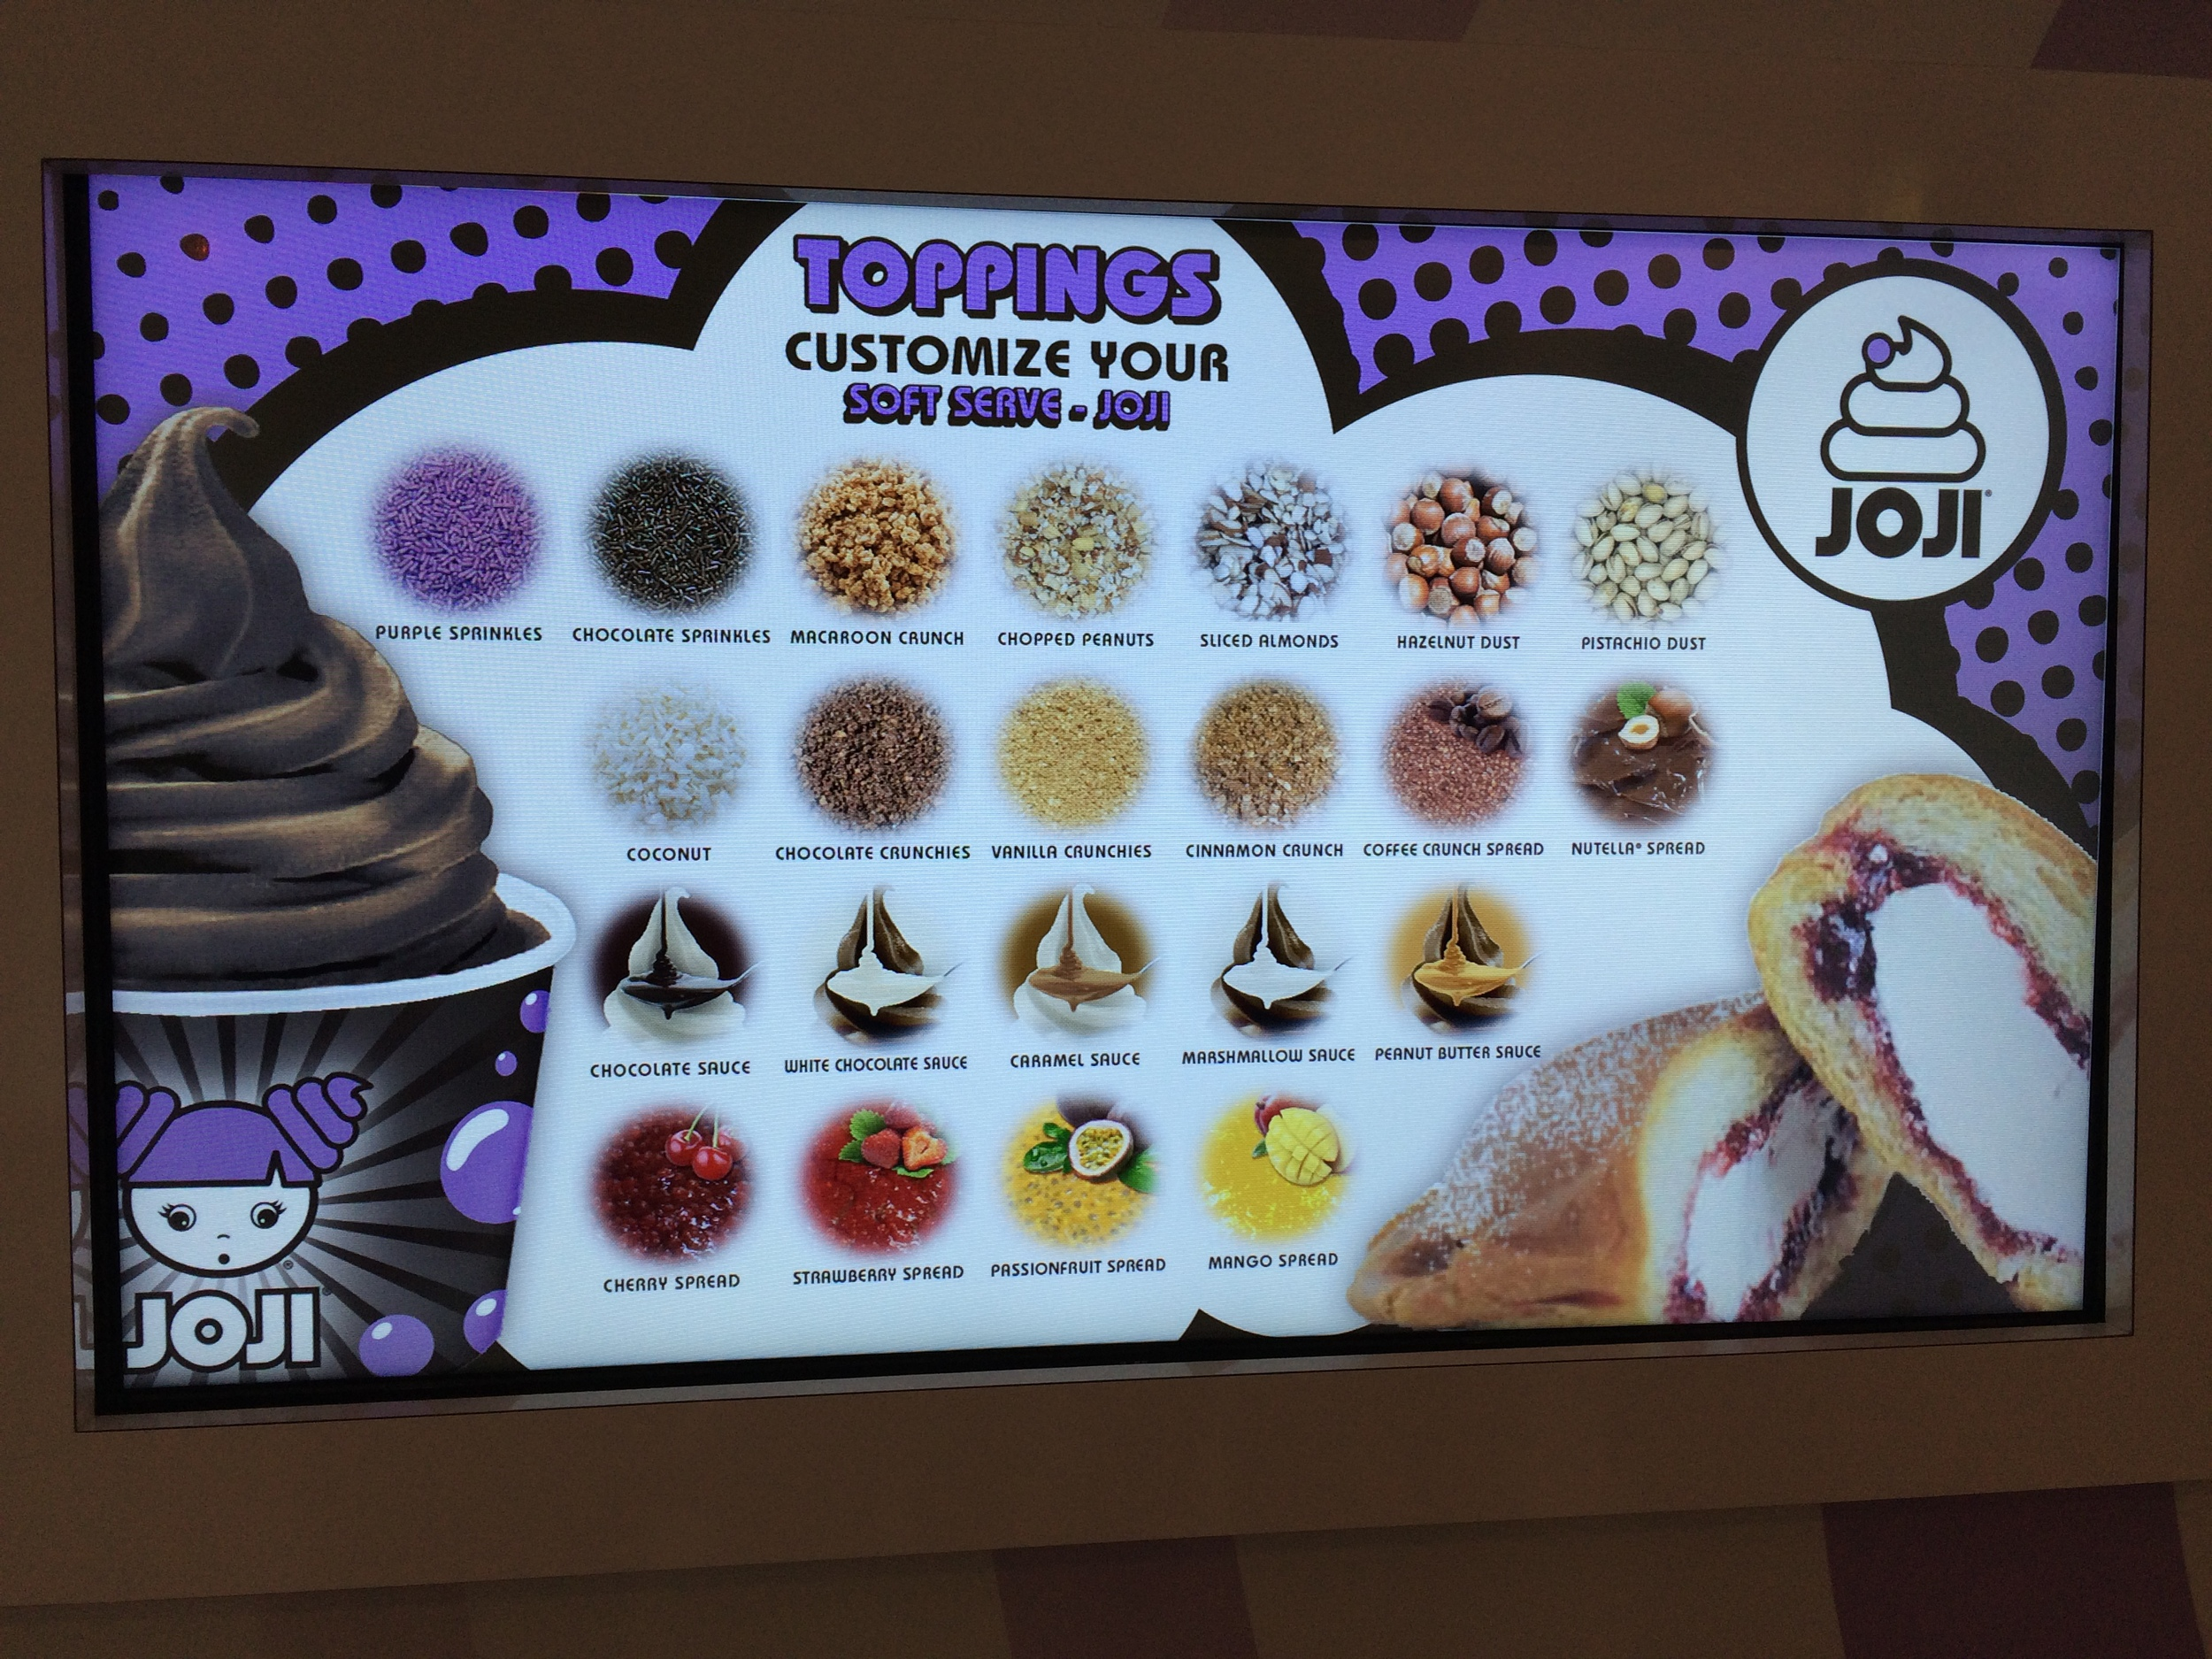 JOJI frozen yogurt - mix and match as you choose for $8.